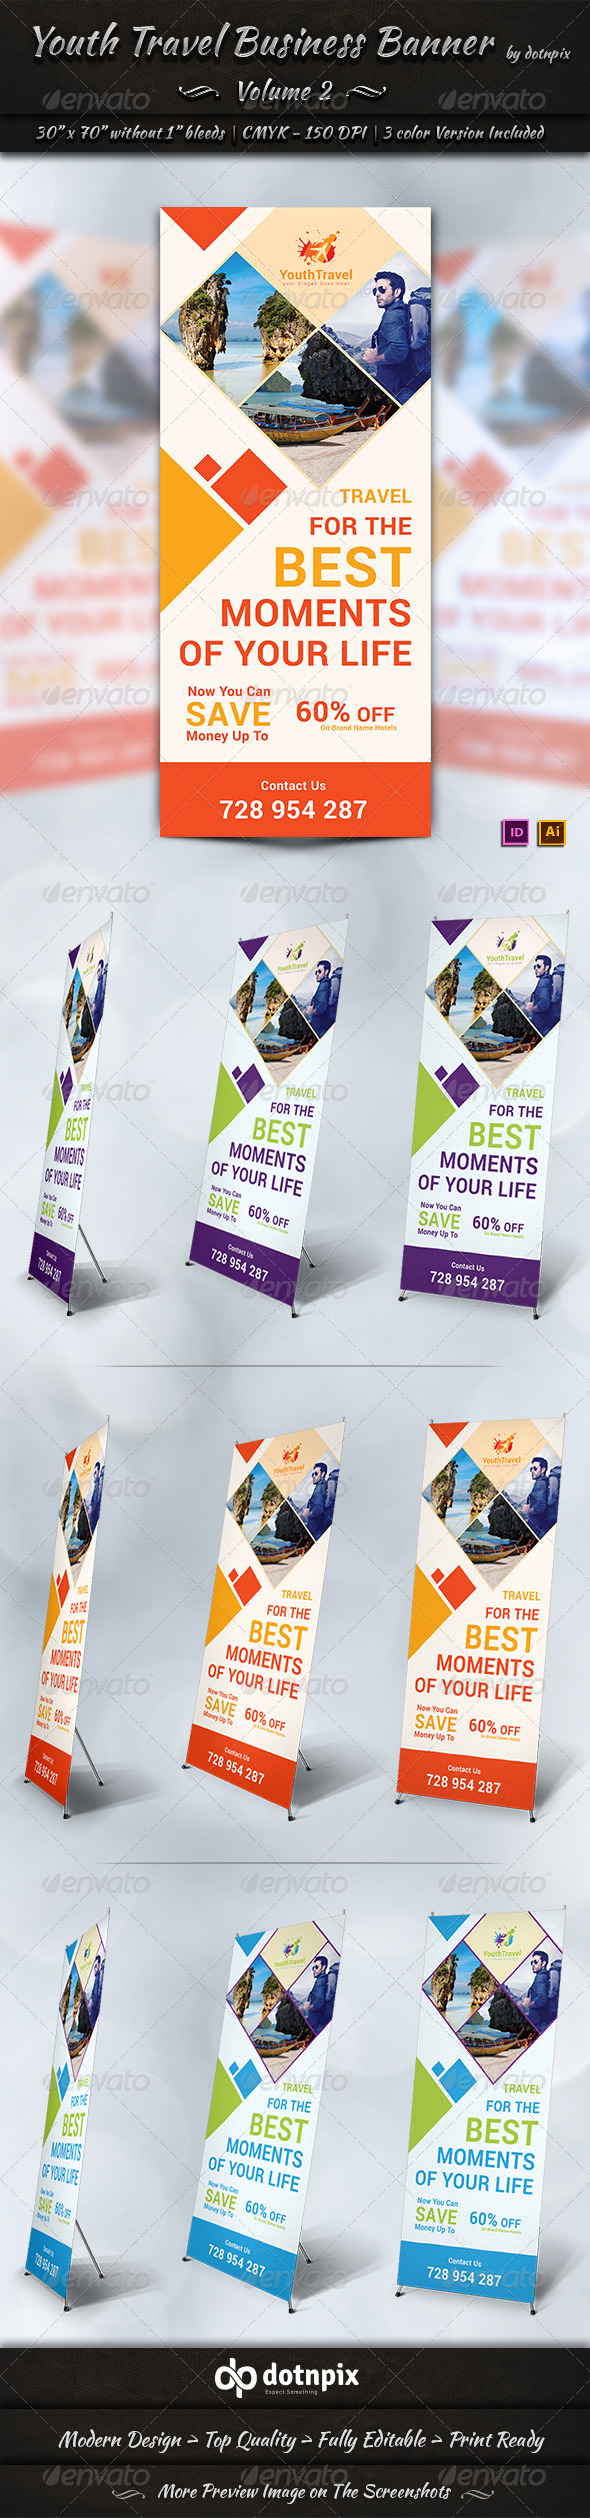 GraphicRiver Youth Travel Business Banner Volume 2 6908337